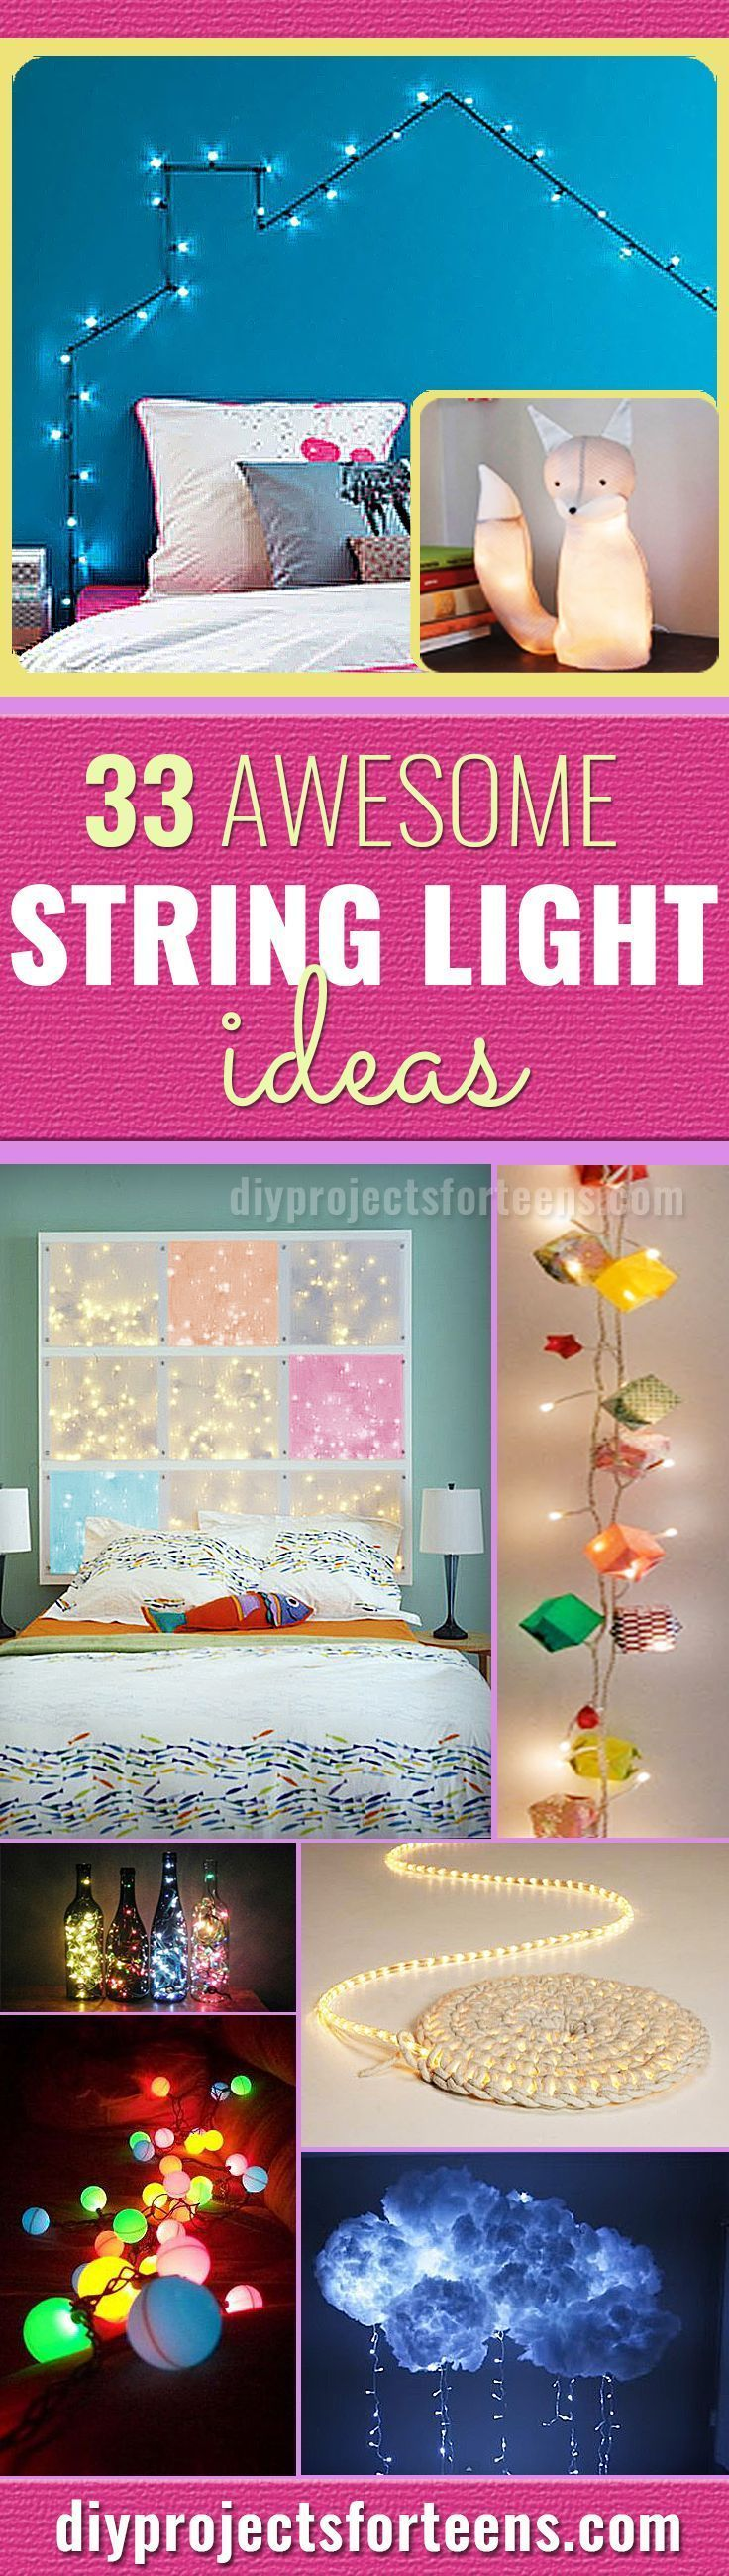 Cool DIY String Light Ideas for Awesome Room Decor - Perfect for Home…